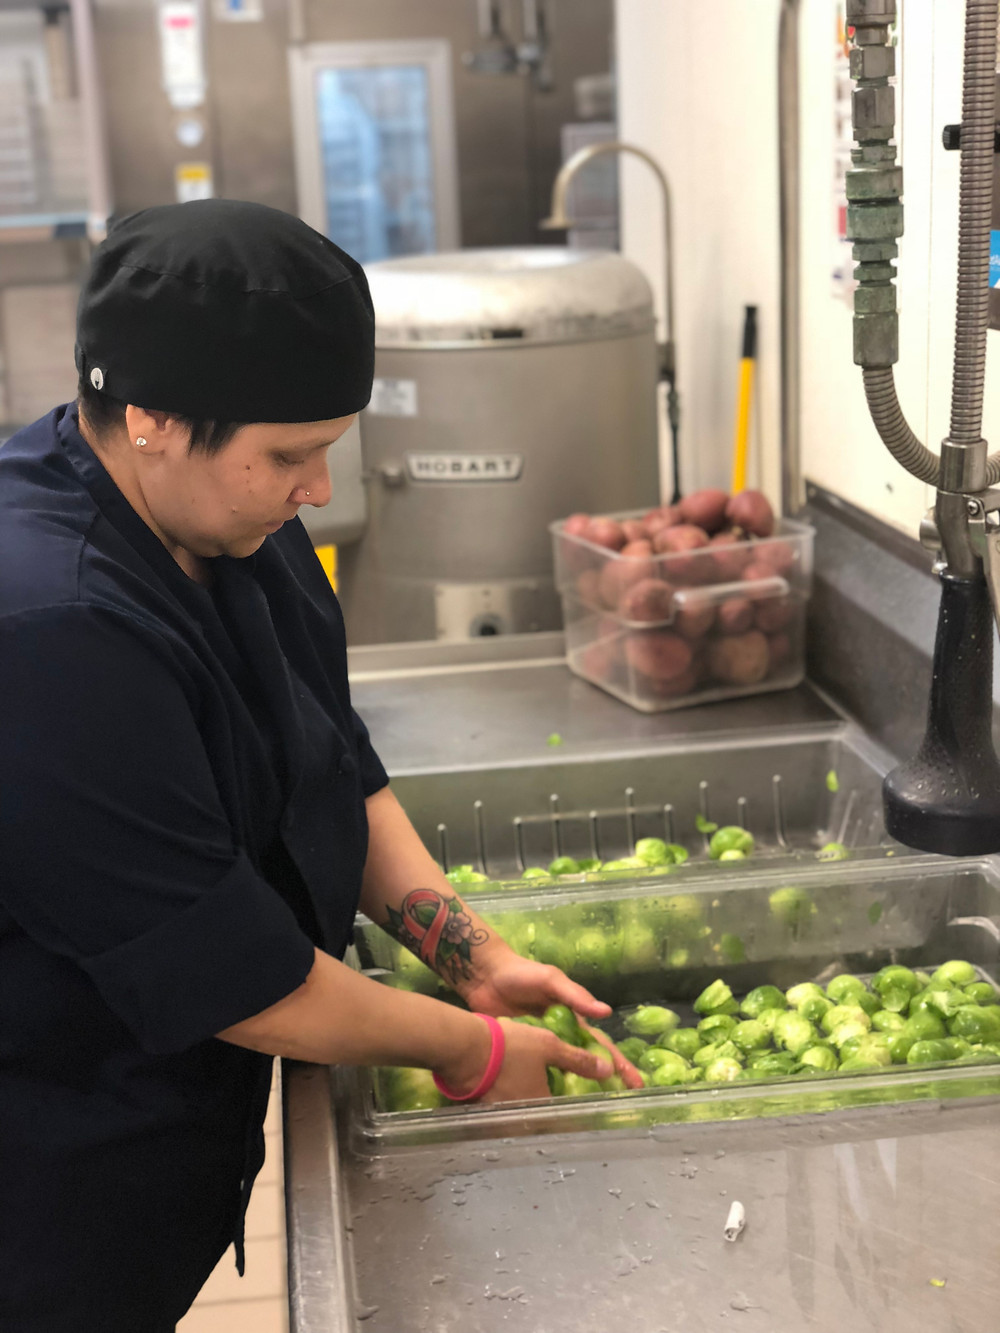 A cafe worker washing Brussel sprouts